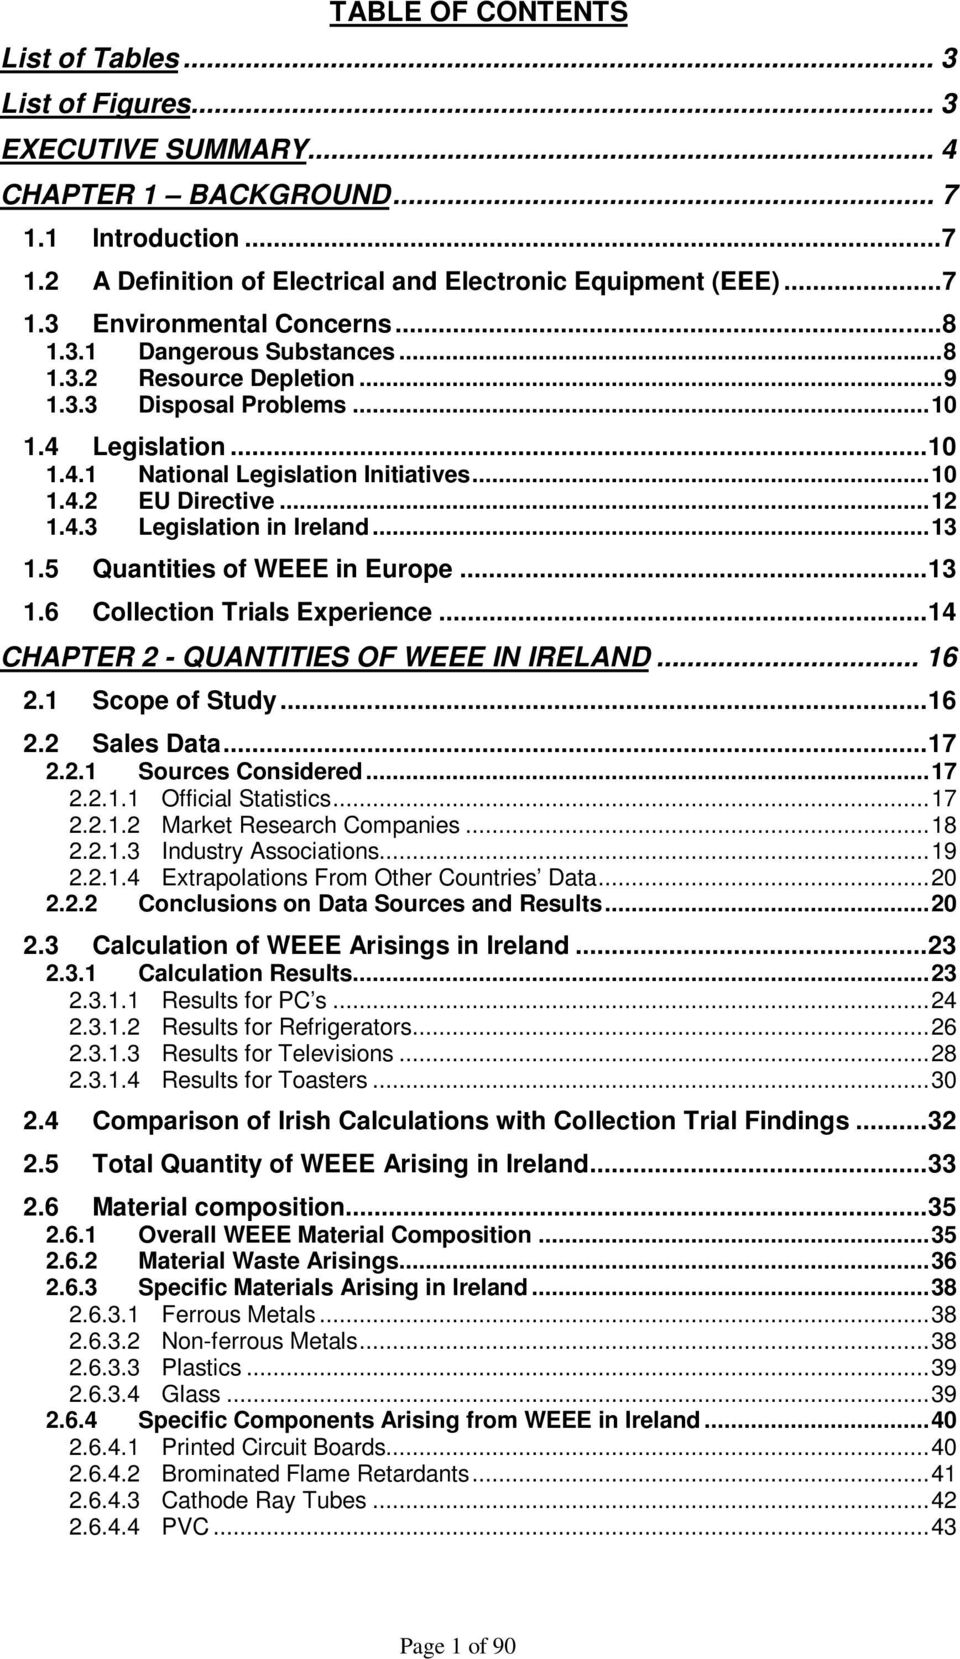 ..13 1.5 Quantities of WEEE in Europe...13 1.6 Collection Trials Experience...14 CHAPTER 2 - QUANTITIES OF WEEE IN IRELAND... 16 2.1 Scope of Study...16 2.2 Sales Data...17 2.2.1 Sources Considered.